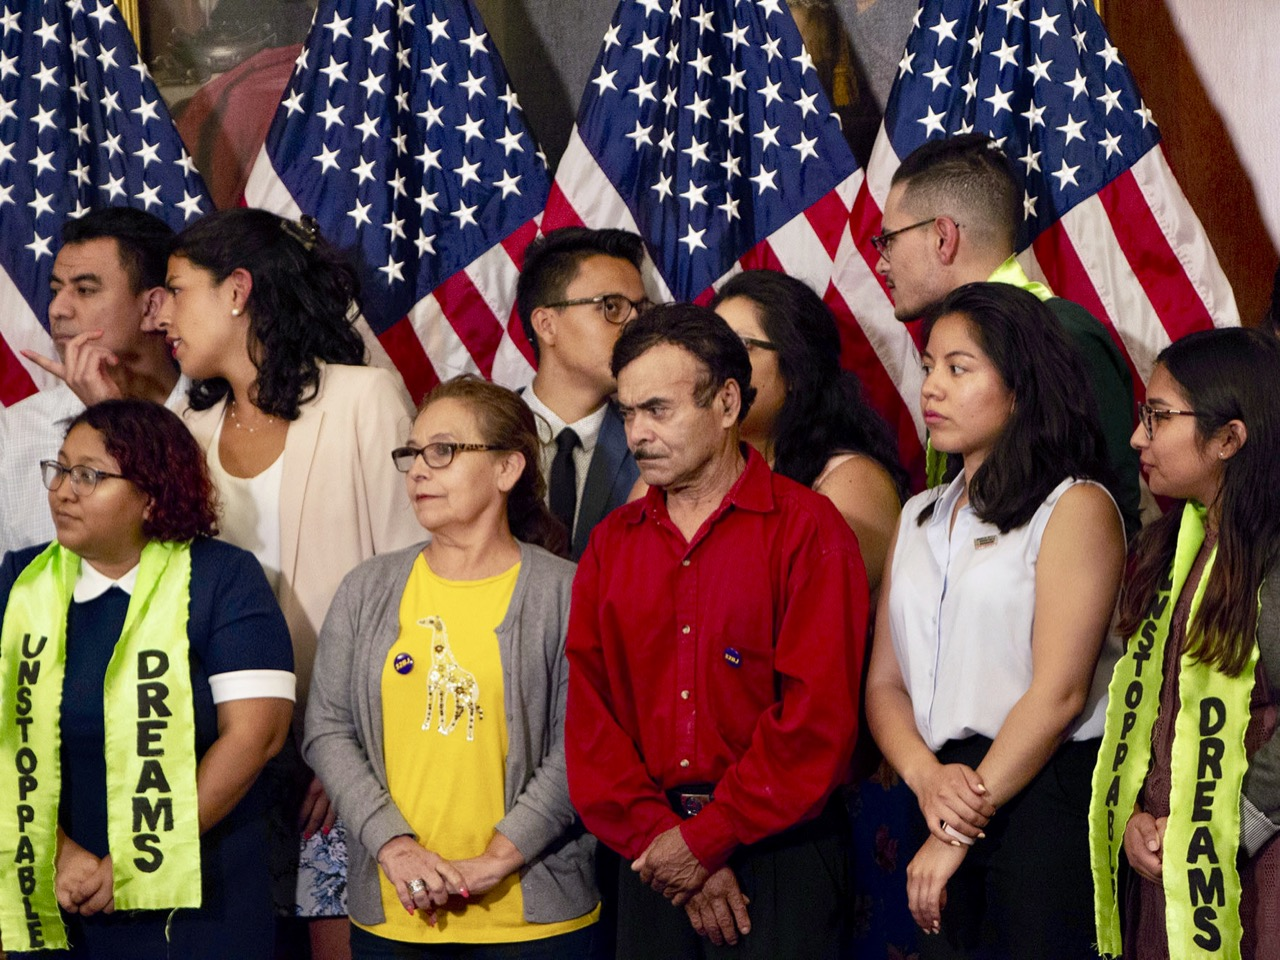 Cronkite News: Lawmakers divided along party lines on bill to protect 'Dreamers'